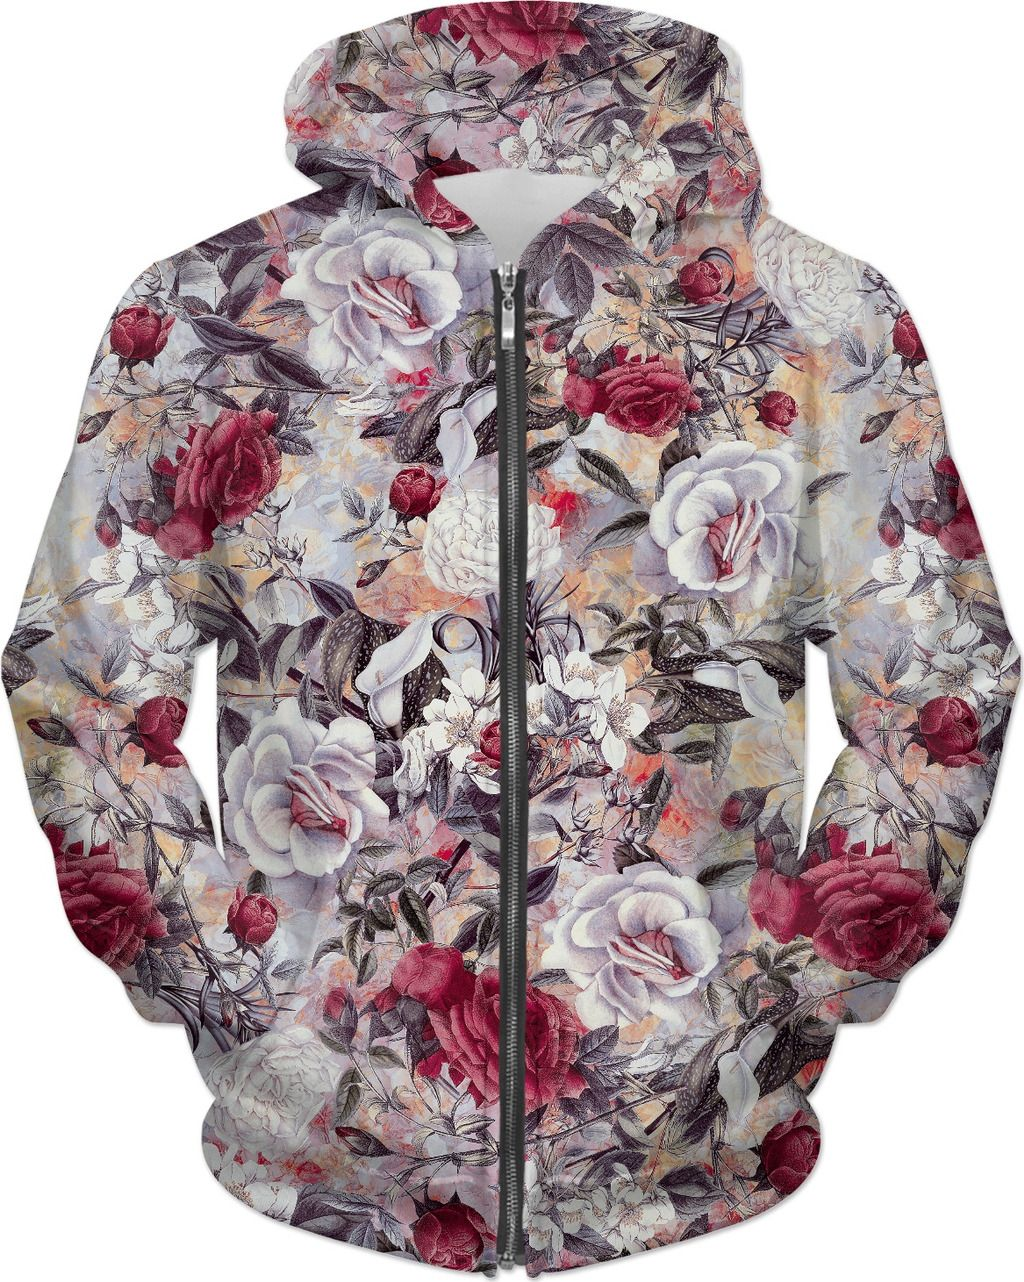 Red Roses | All Over Print | Red roses, Vintage roses, Red